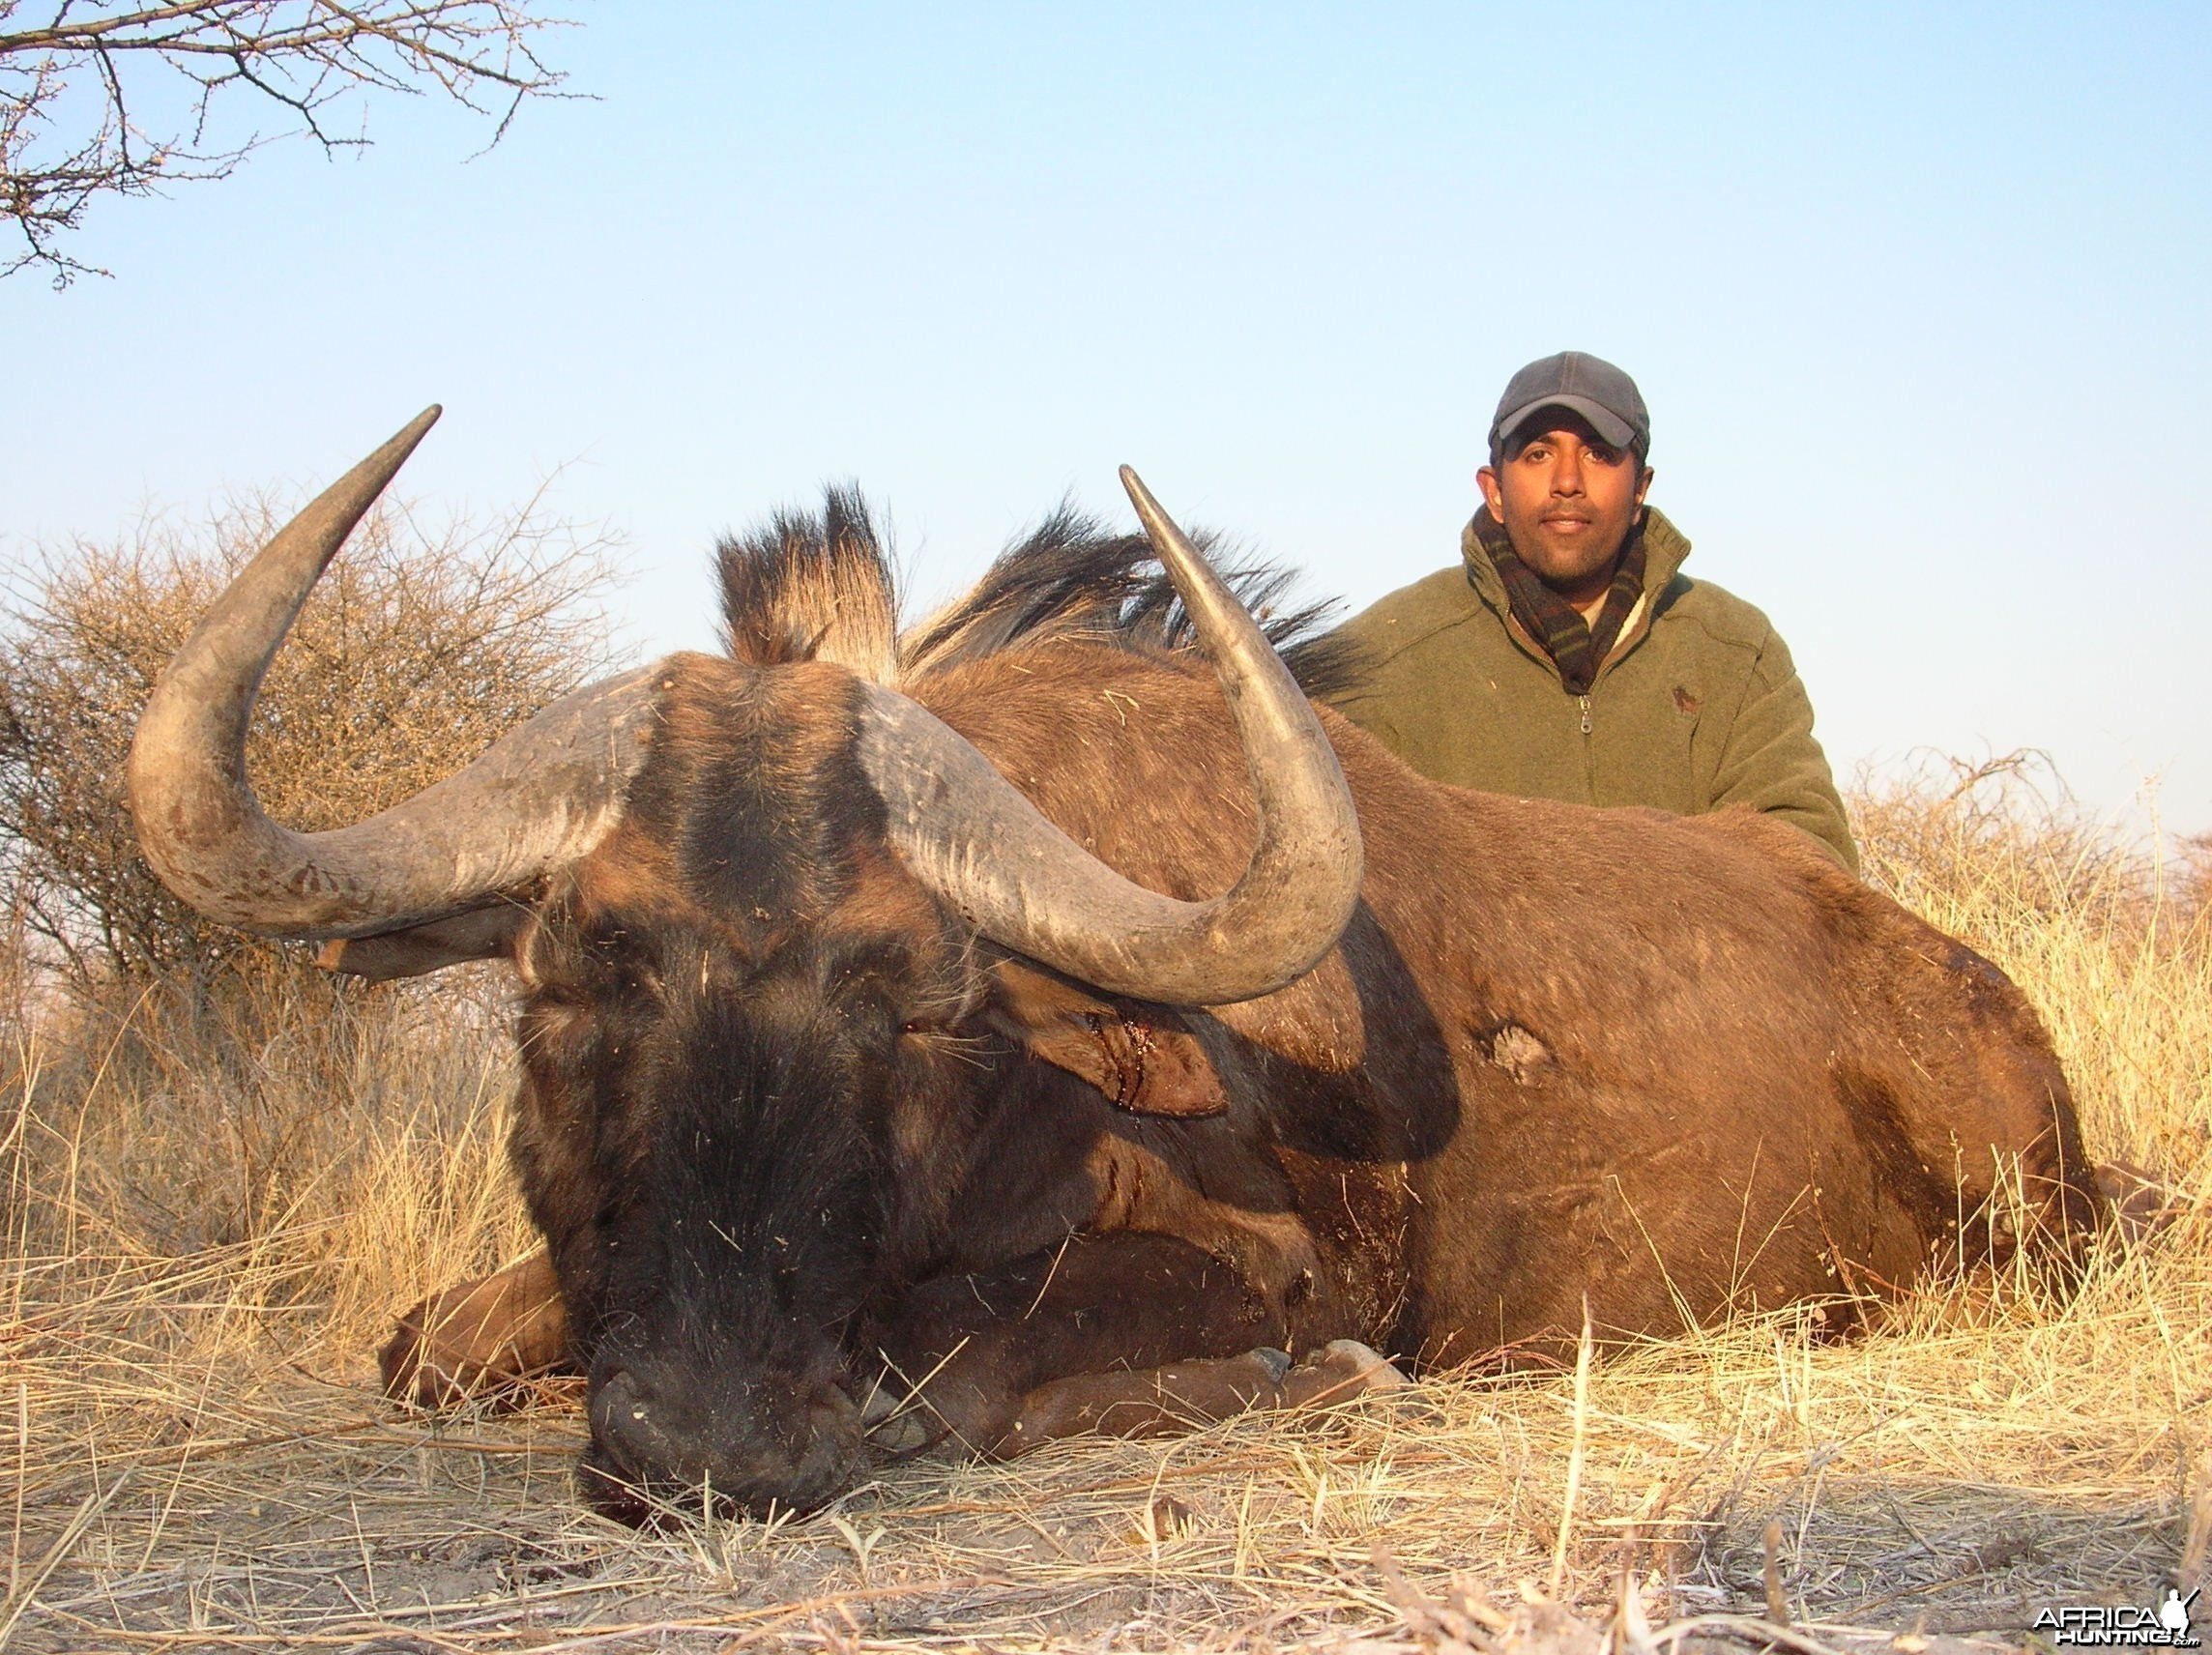 Cross Breed Blue & Black Wildebeest Hunted in Namibia